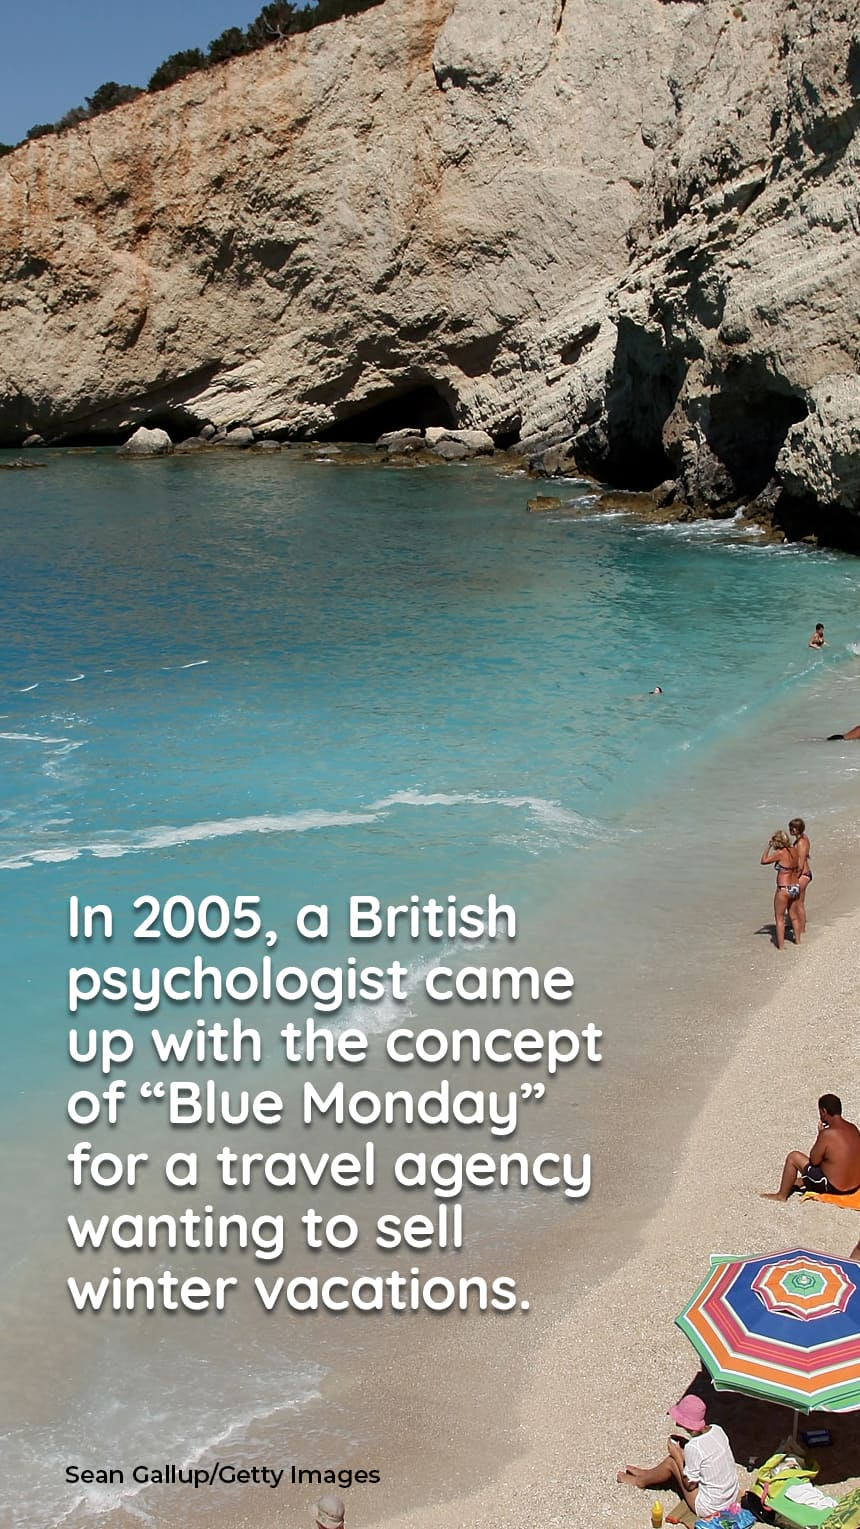 """In 2005, a British psychologist came up with the concept of """"Blue Monday"""" for a travel agency wanting to sell winter vacations.  IMAGE: Sunbathers on a beach"""